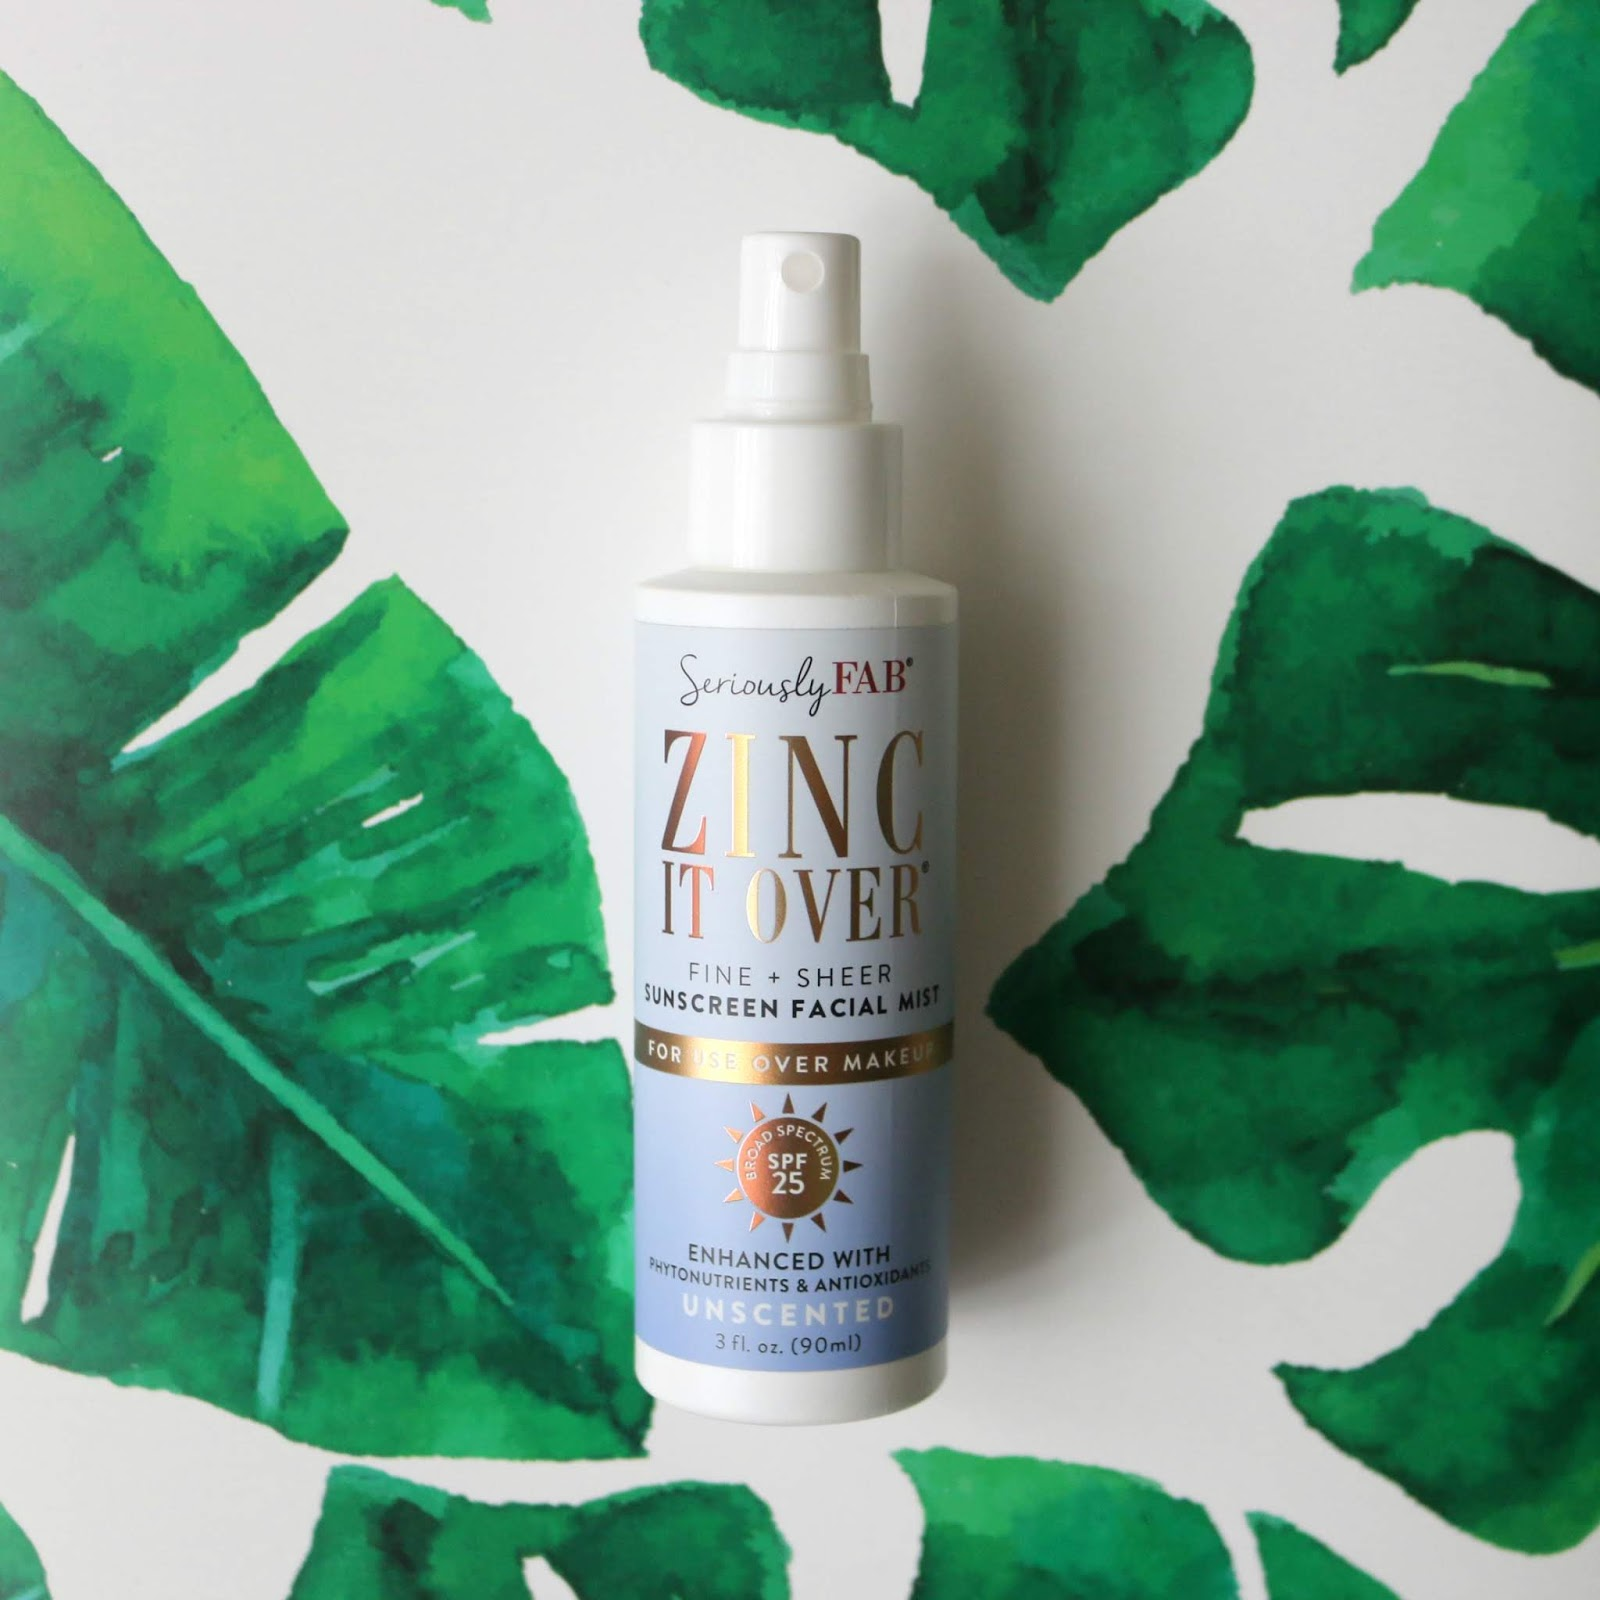 Seriously FAB Zinc It Over Sunscreen Facial Mist SPF 25 Unscented